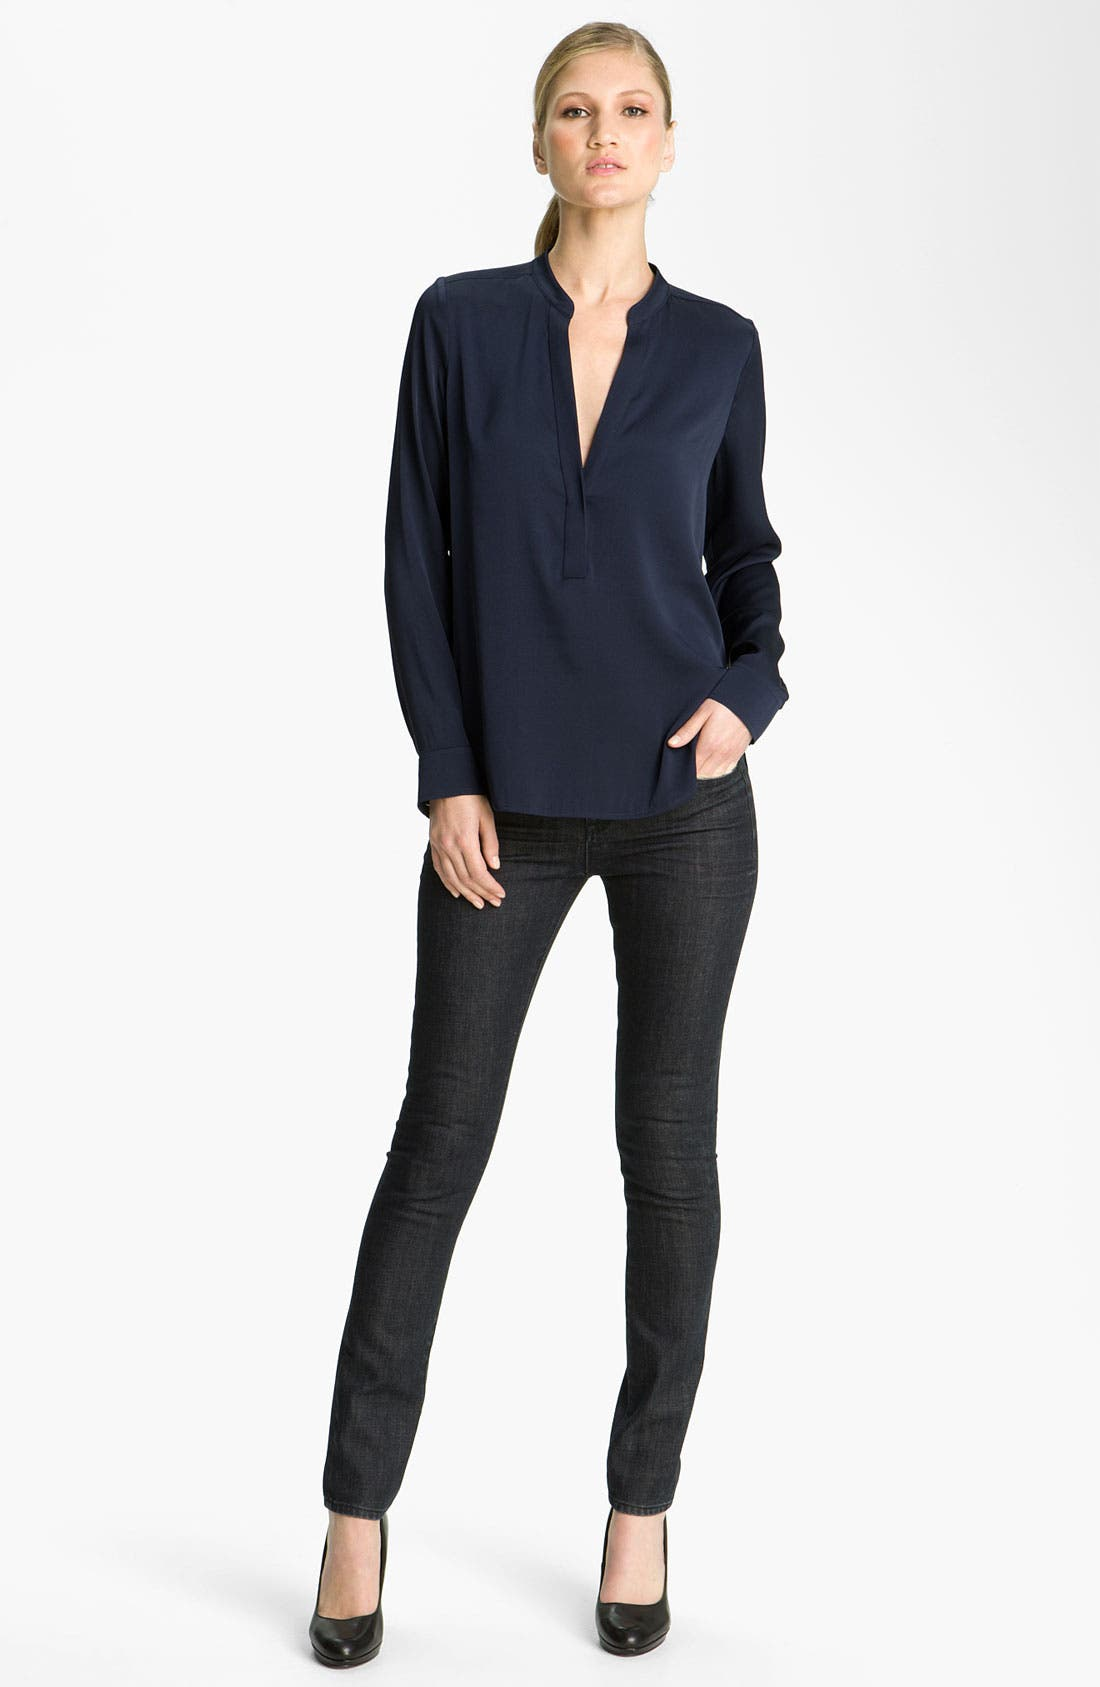 Main Image - Vince Silk Blouse & Skinny Jeans